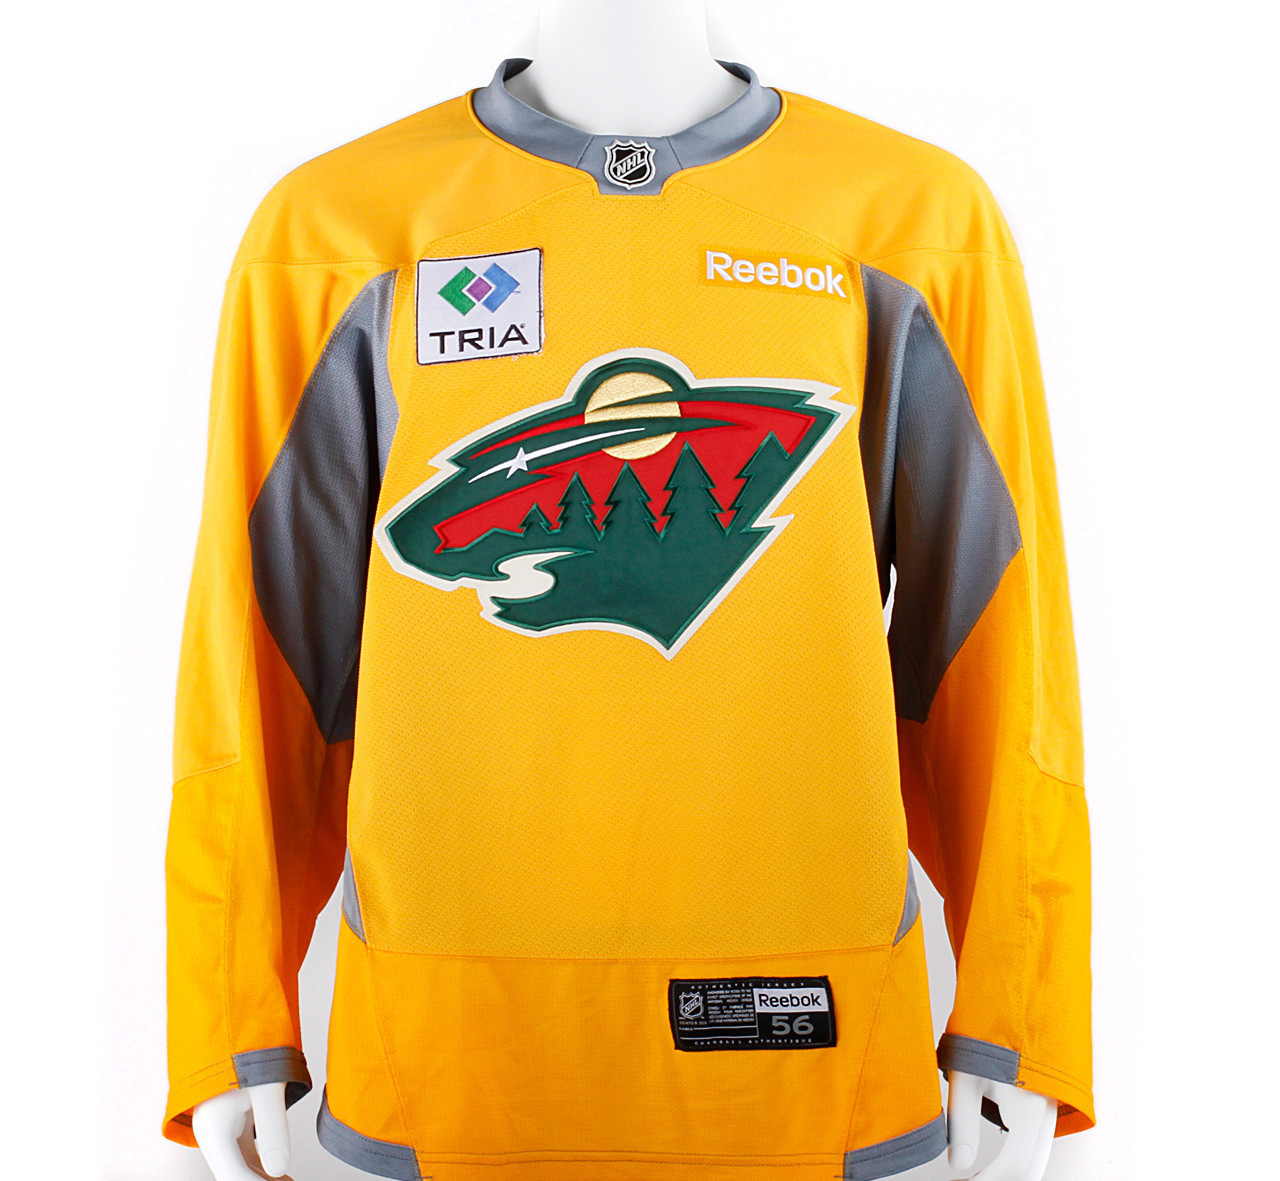 ... closeout practice jersey minnesota wild yellow reebok size 56. home  jerseys socks hockey practice jerseys 83ee461ce